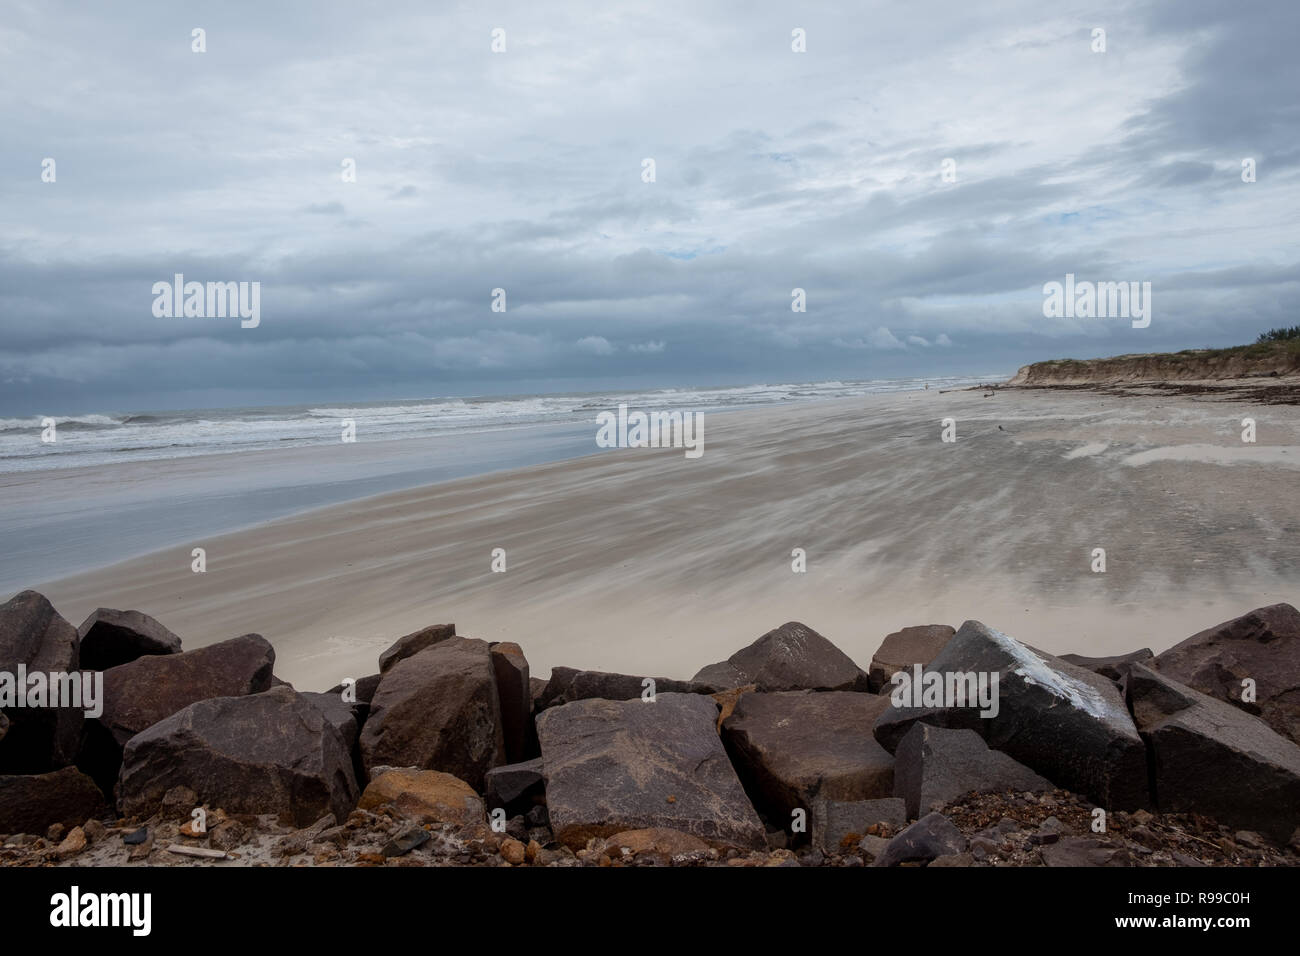 View of the beach on a very windy day in the winter season. Focus in a cluster of stones. Torres beach, Rio Grande do Sul state, Brazil. - Stock Image